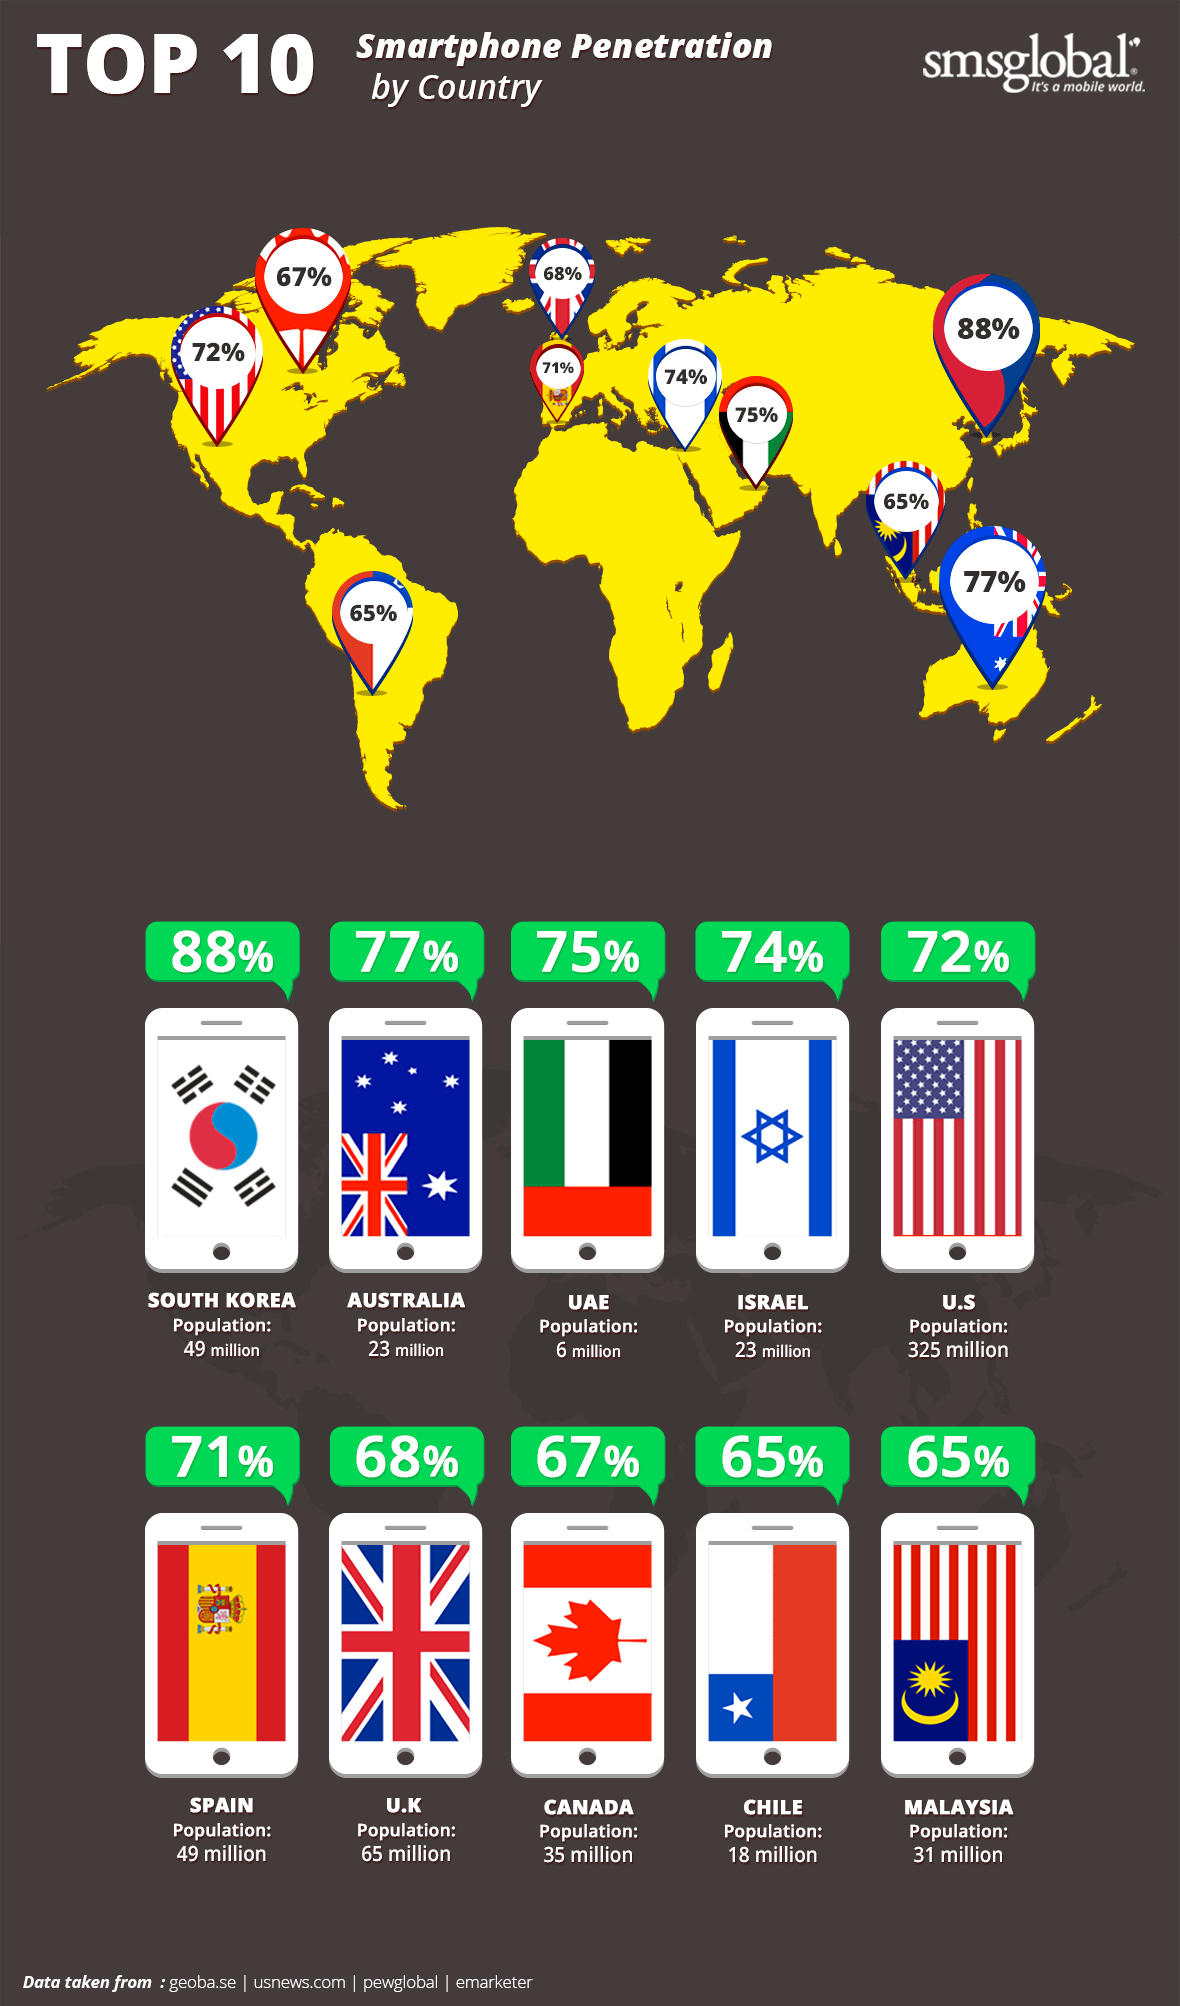 Infographic: Smartphone Penetration By Country - Top 10